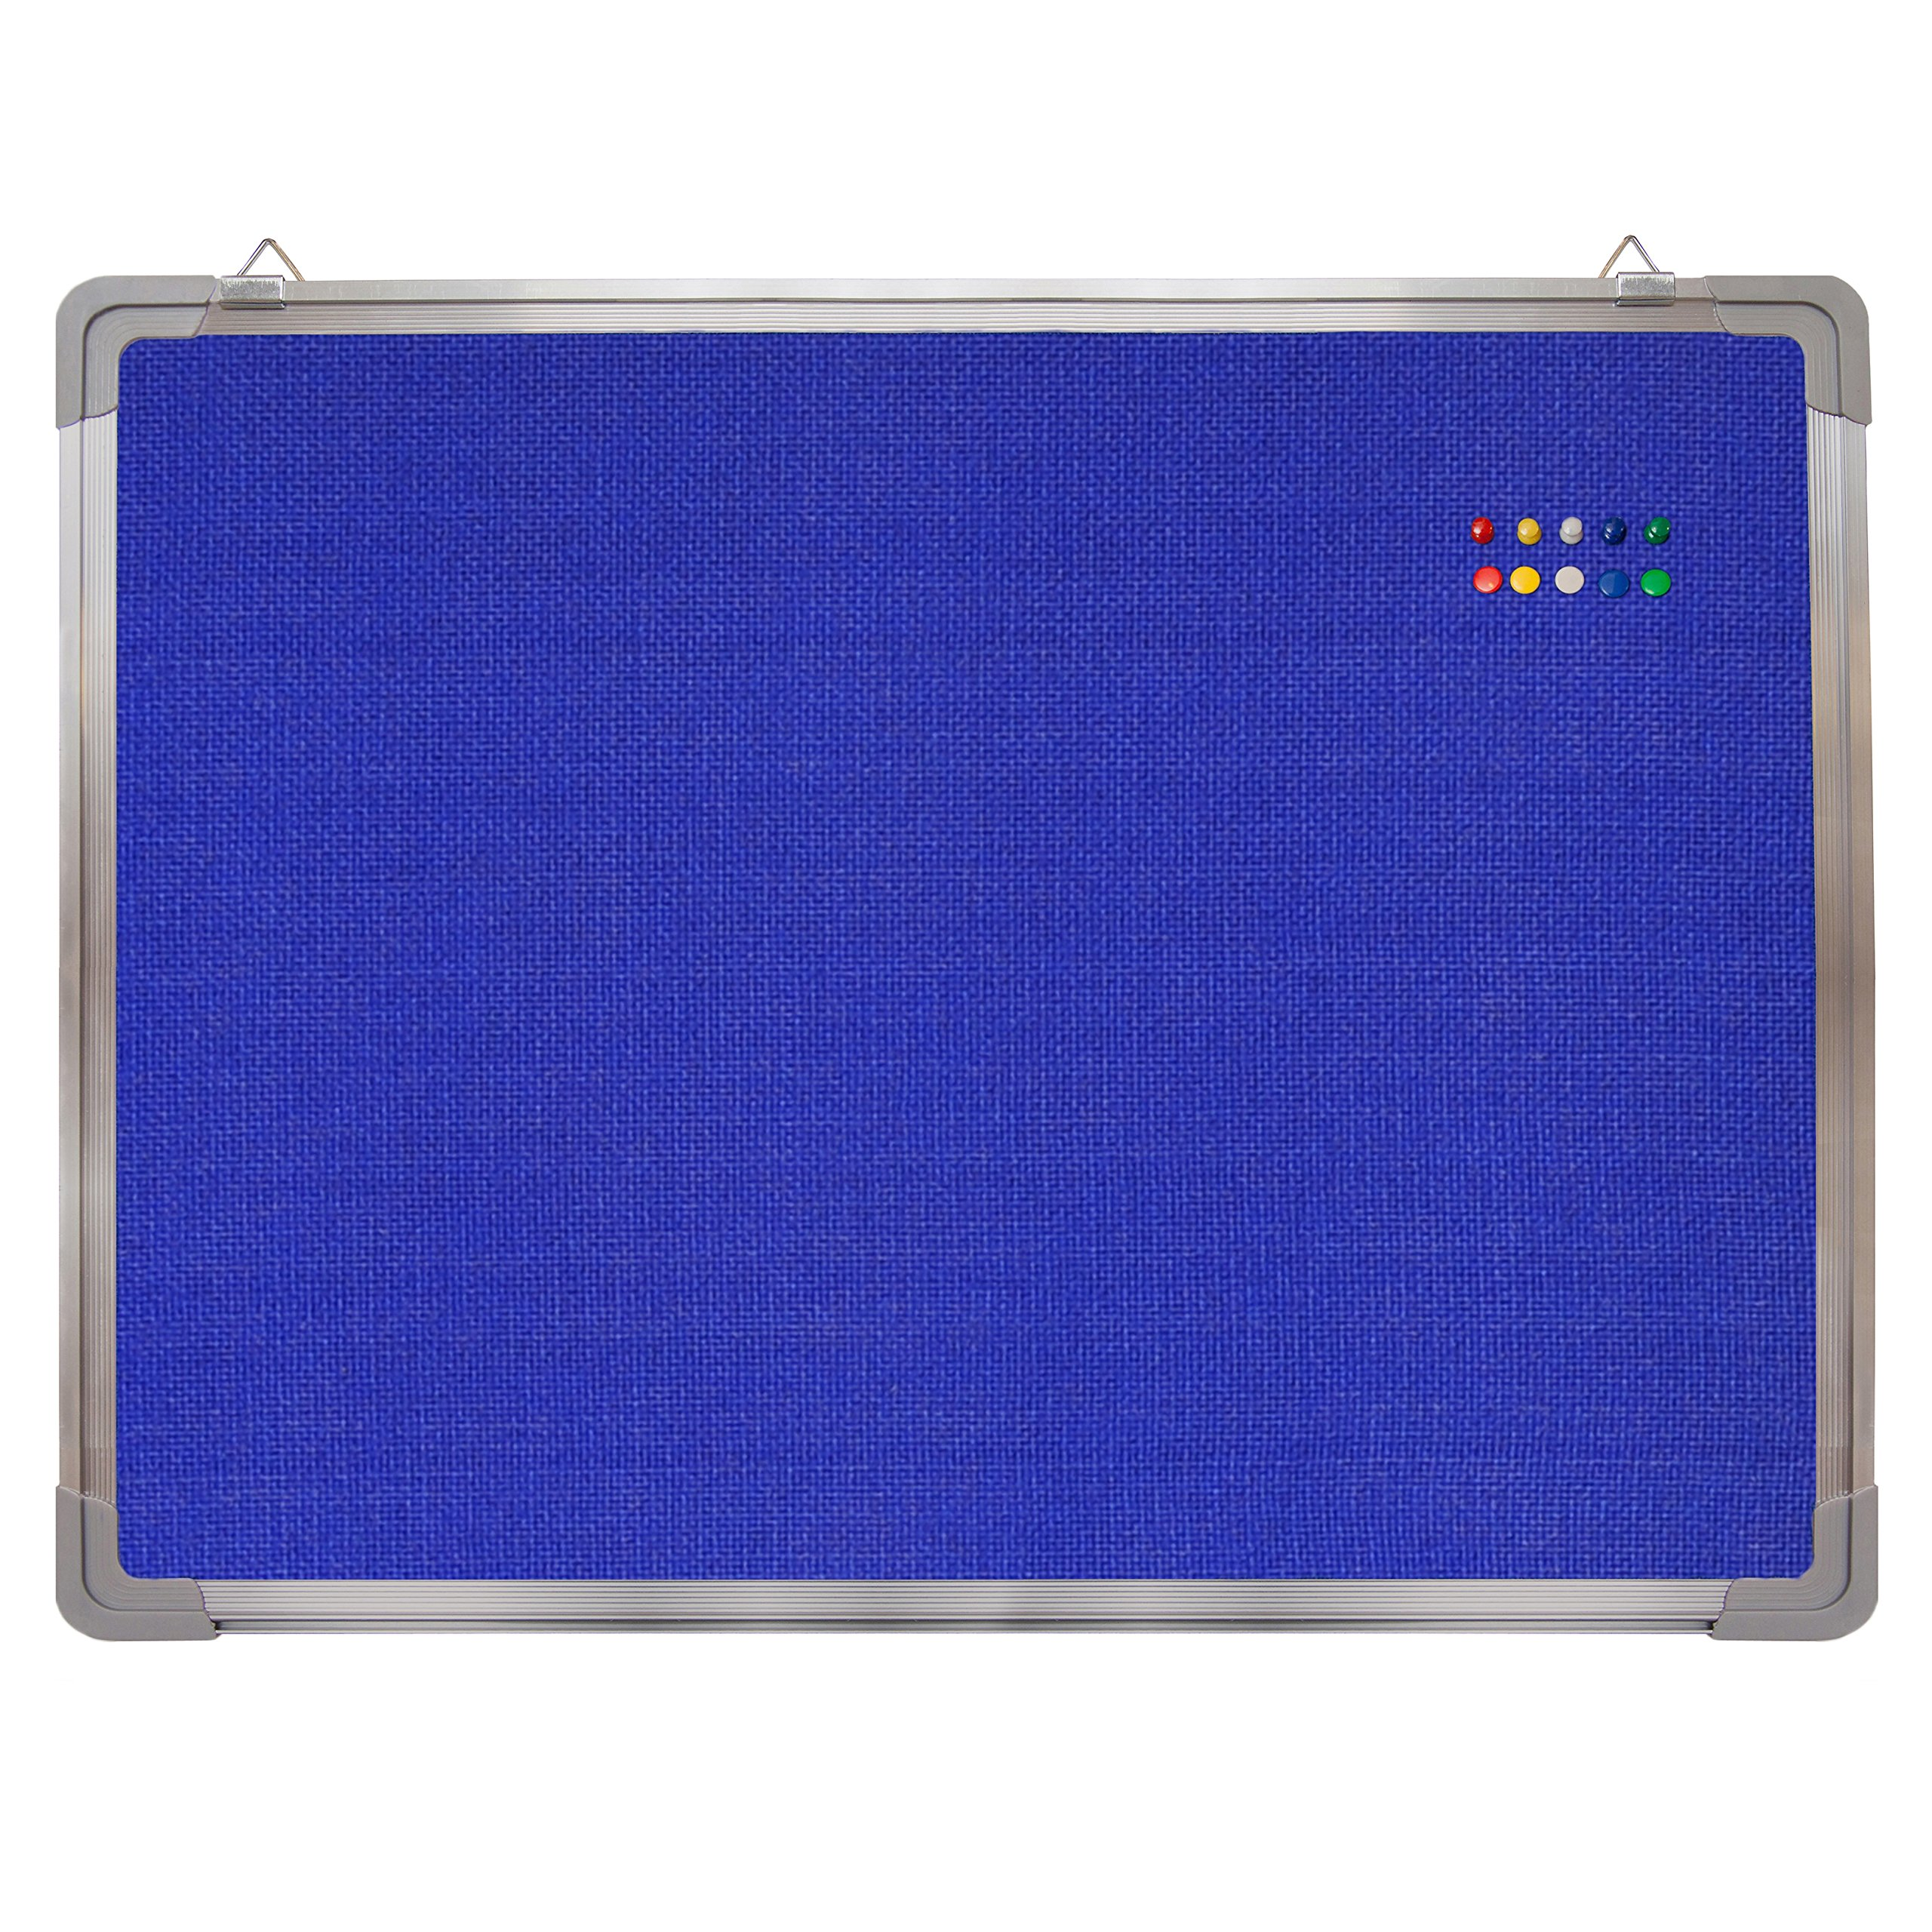 Bulletin Board Set - Felt Tack Board 24 x 18 + 10 Color Push Pins - Small Wall Hanging Message Memo Mini Display Board with Aluminium Frame for Home Office Cubicle School Kids (Blue Fabric 24x18)